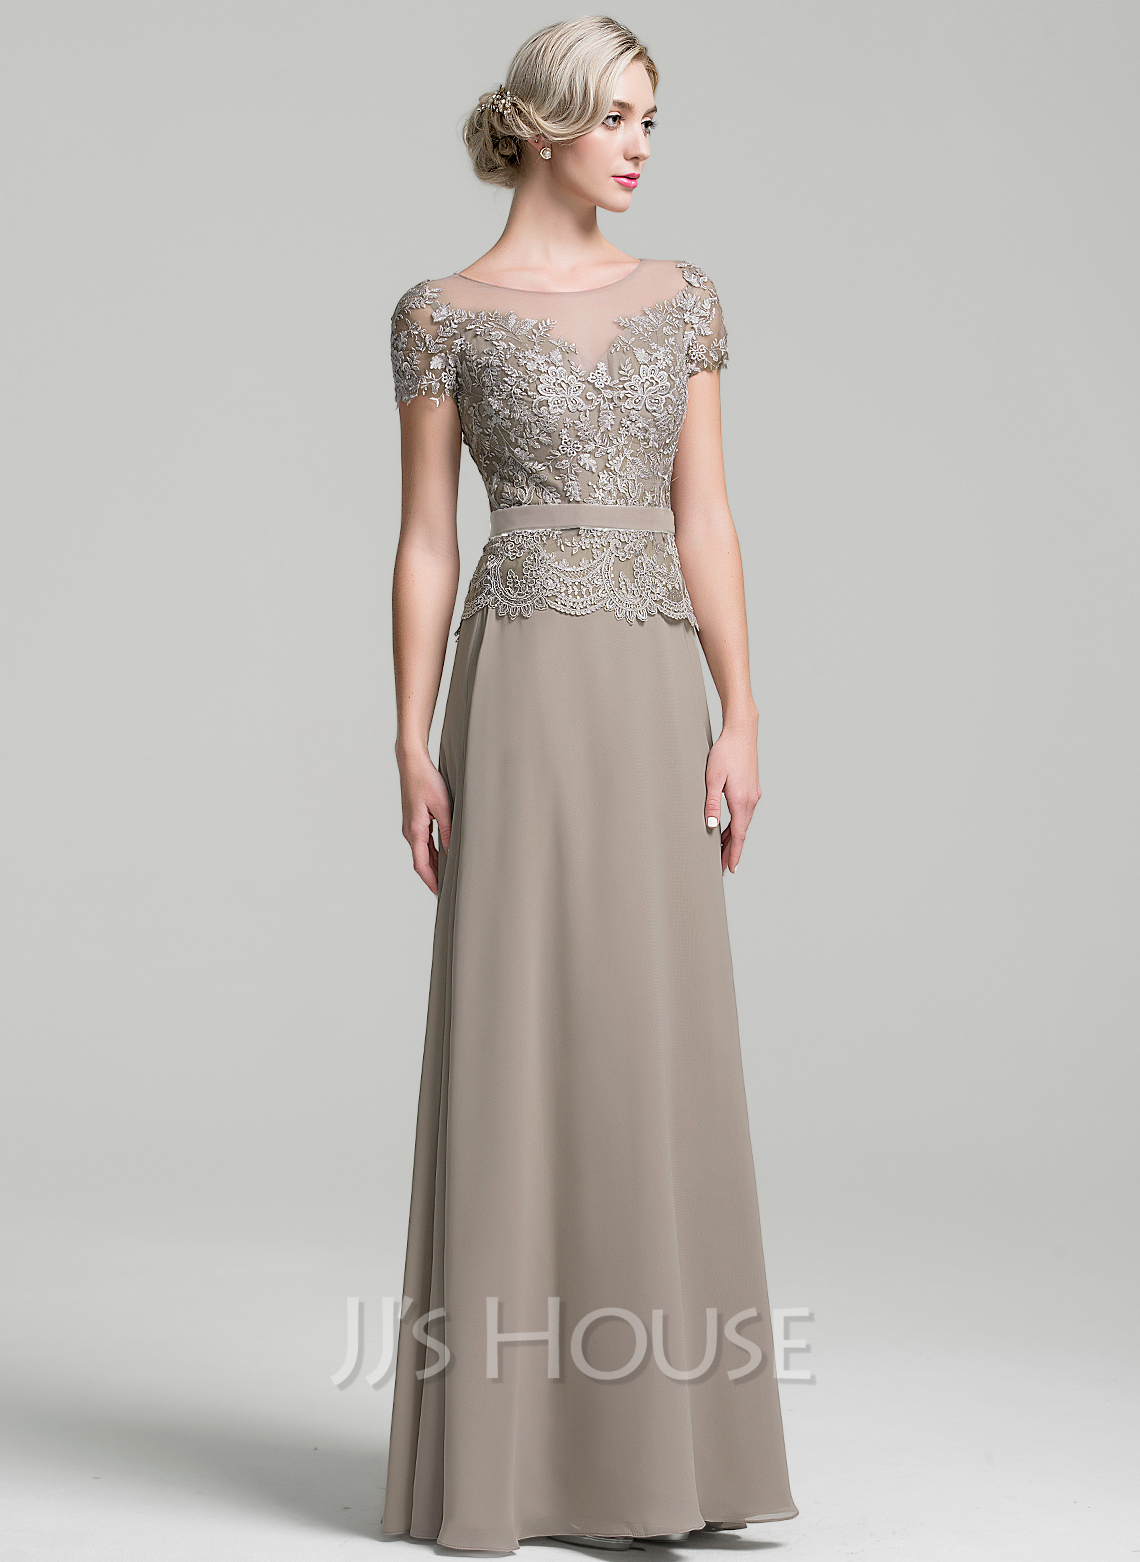 4dce888c1261c Scoop Neck Floor-Length Chiffon Mother of the Bride Dress (267196466 ...